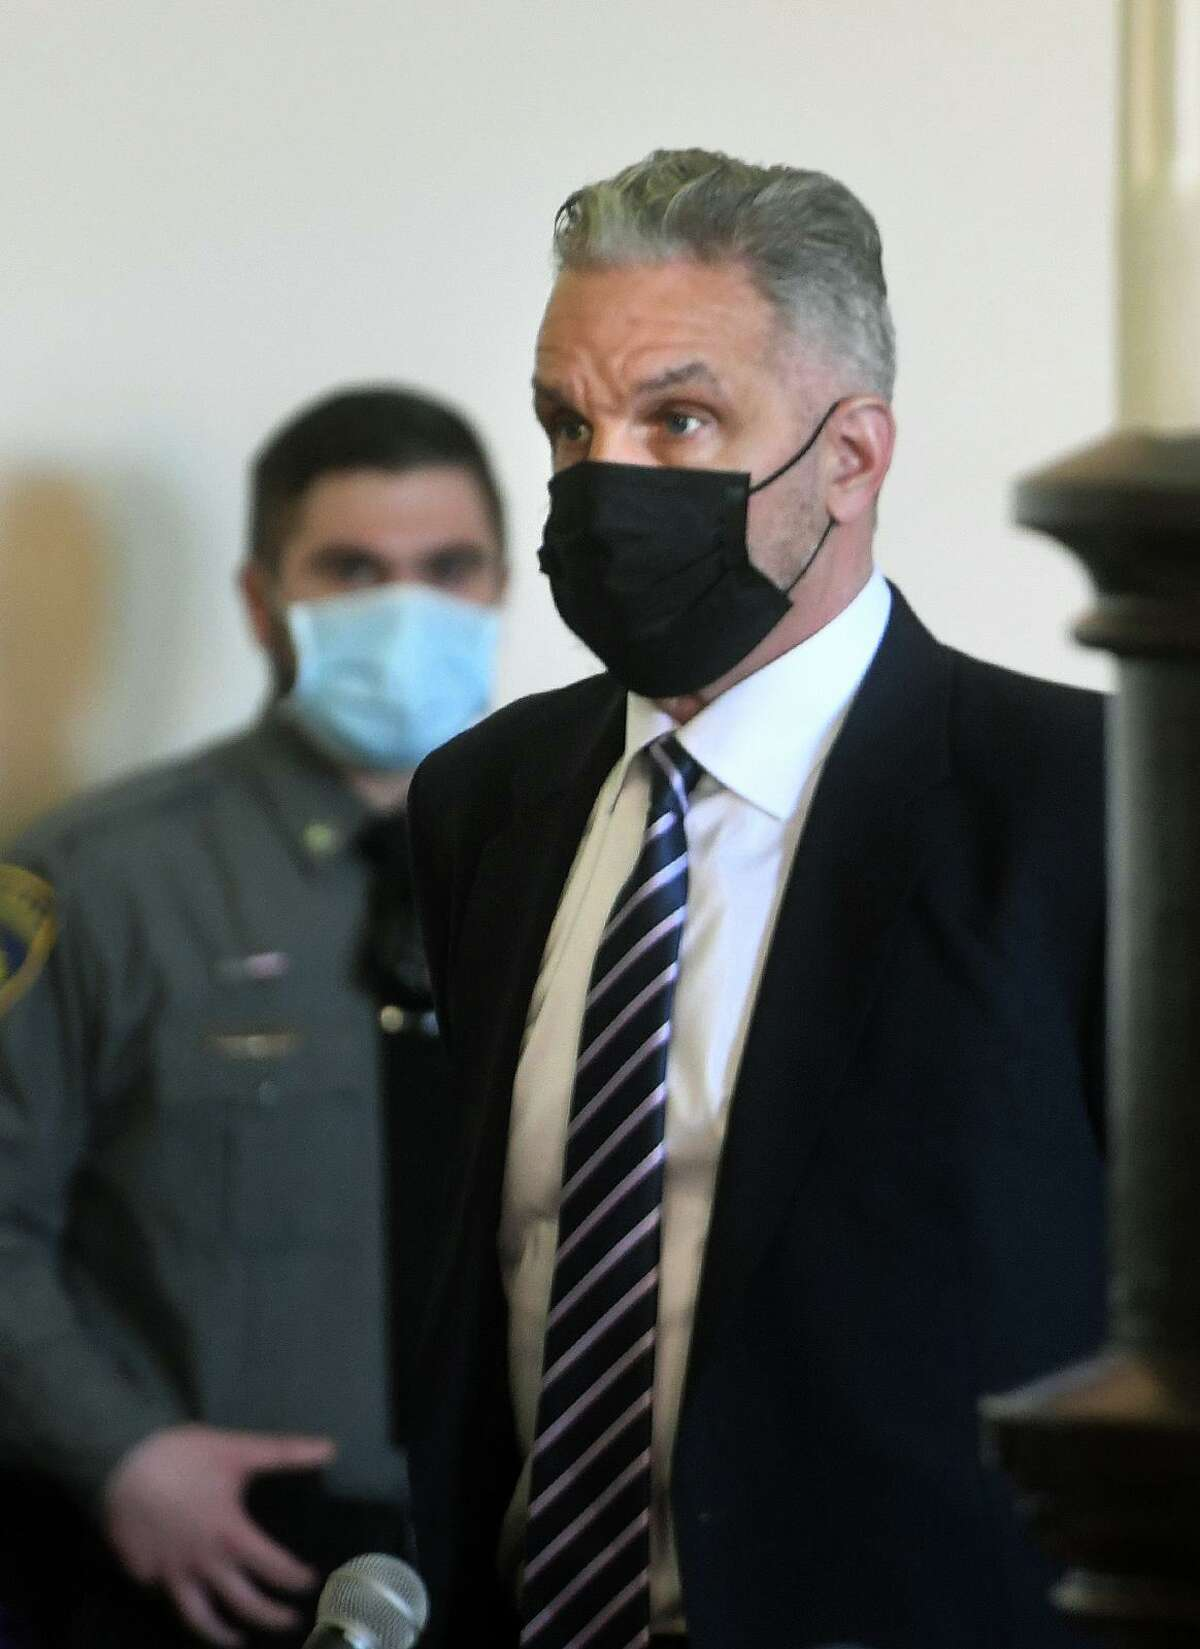 John Vazzano, of Trumbull, is arraigned in state Superior Court in Bridgeport on Feb. 25.